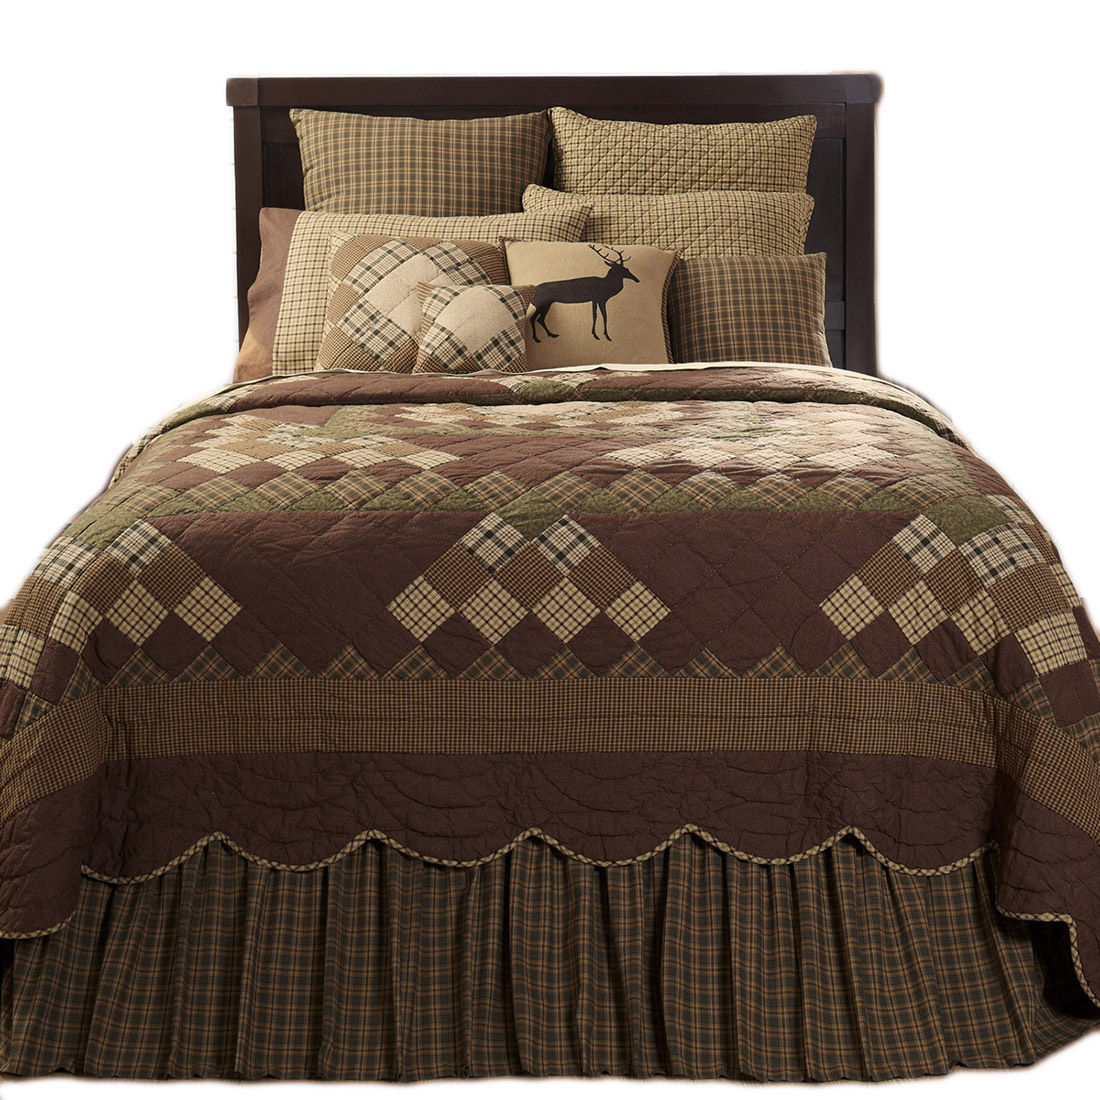 9-pc King - BARRINGTON Quilt Country Set - Scalloped Brown, Green - VHC Brand